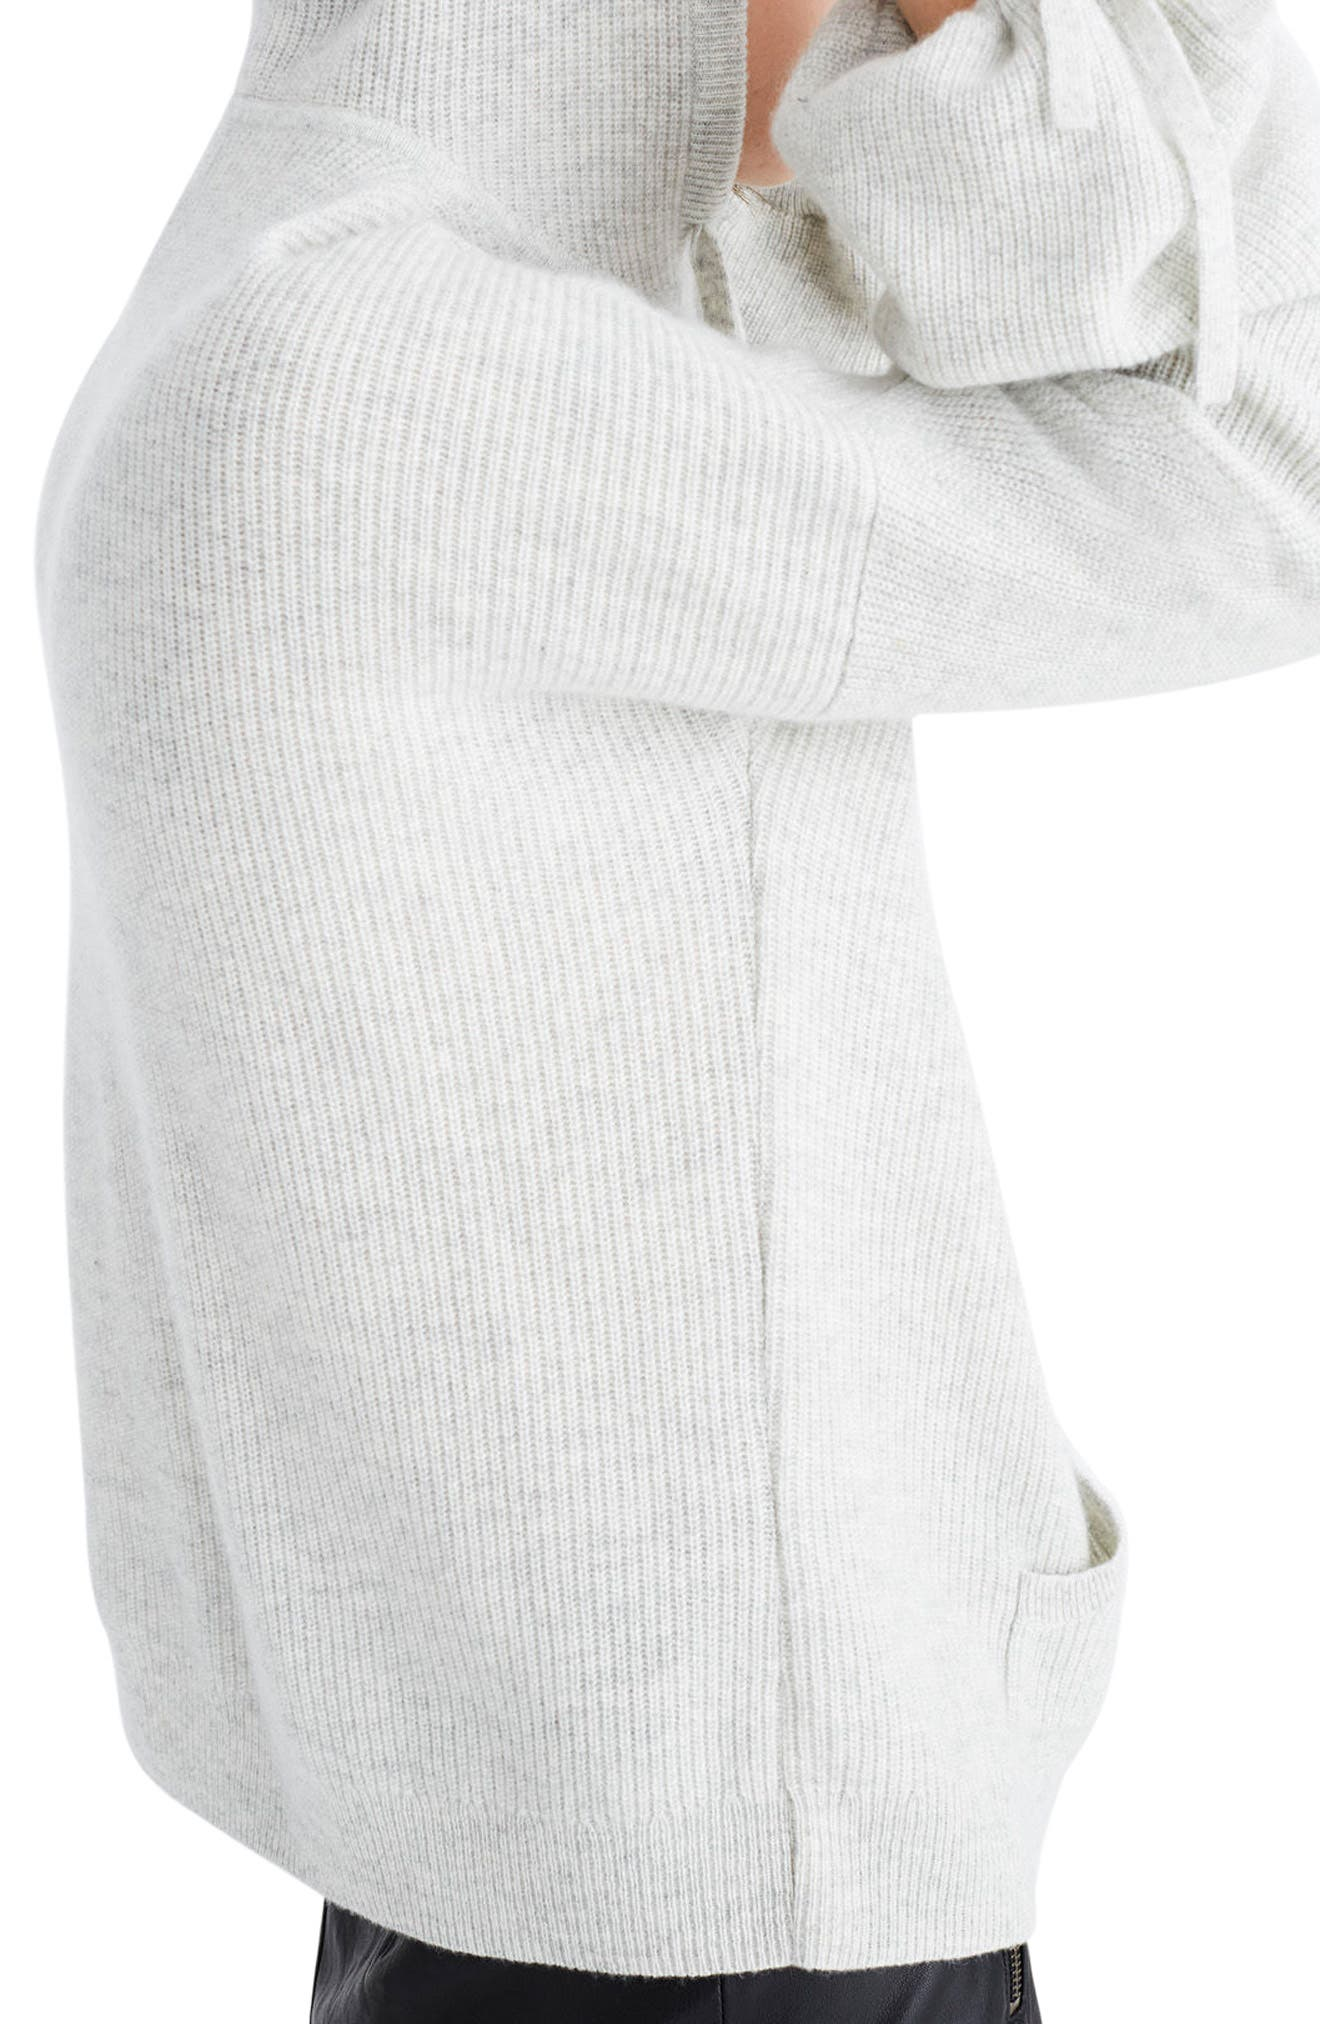 Cashmere Hooded Sweater,                             Alternate thumbnail 2, color,                             020